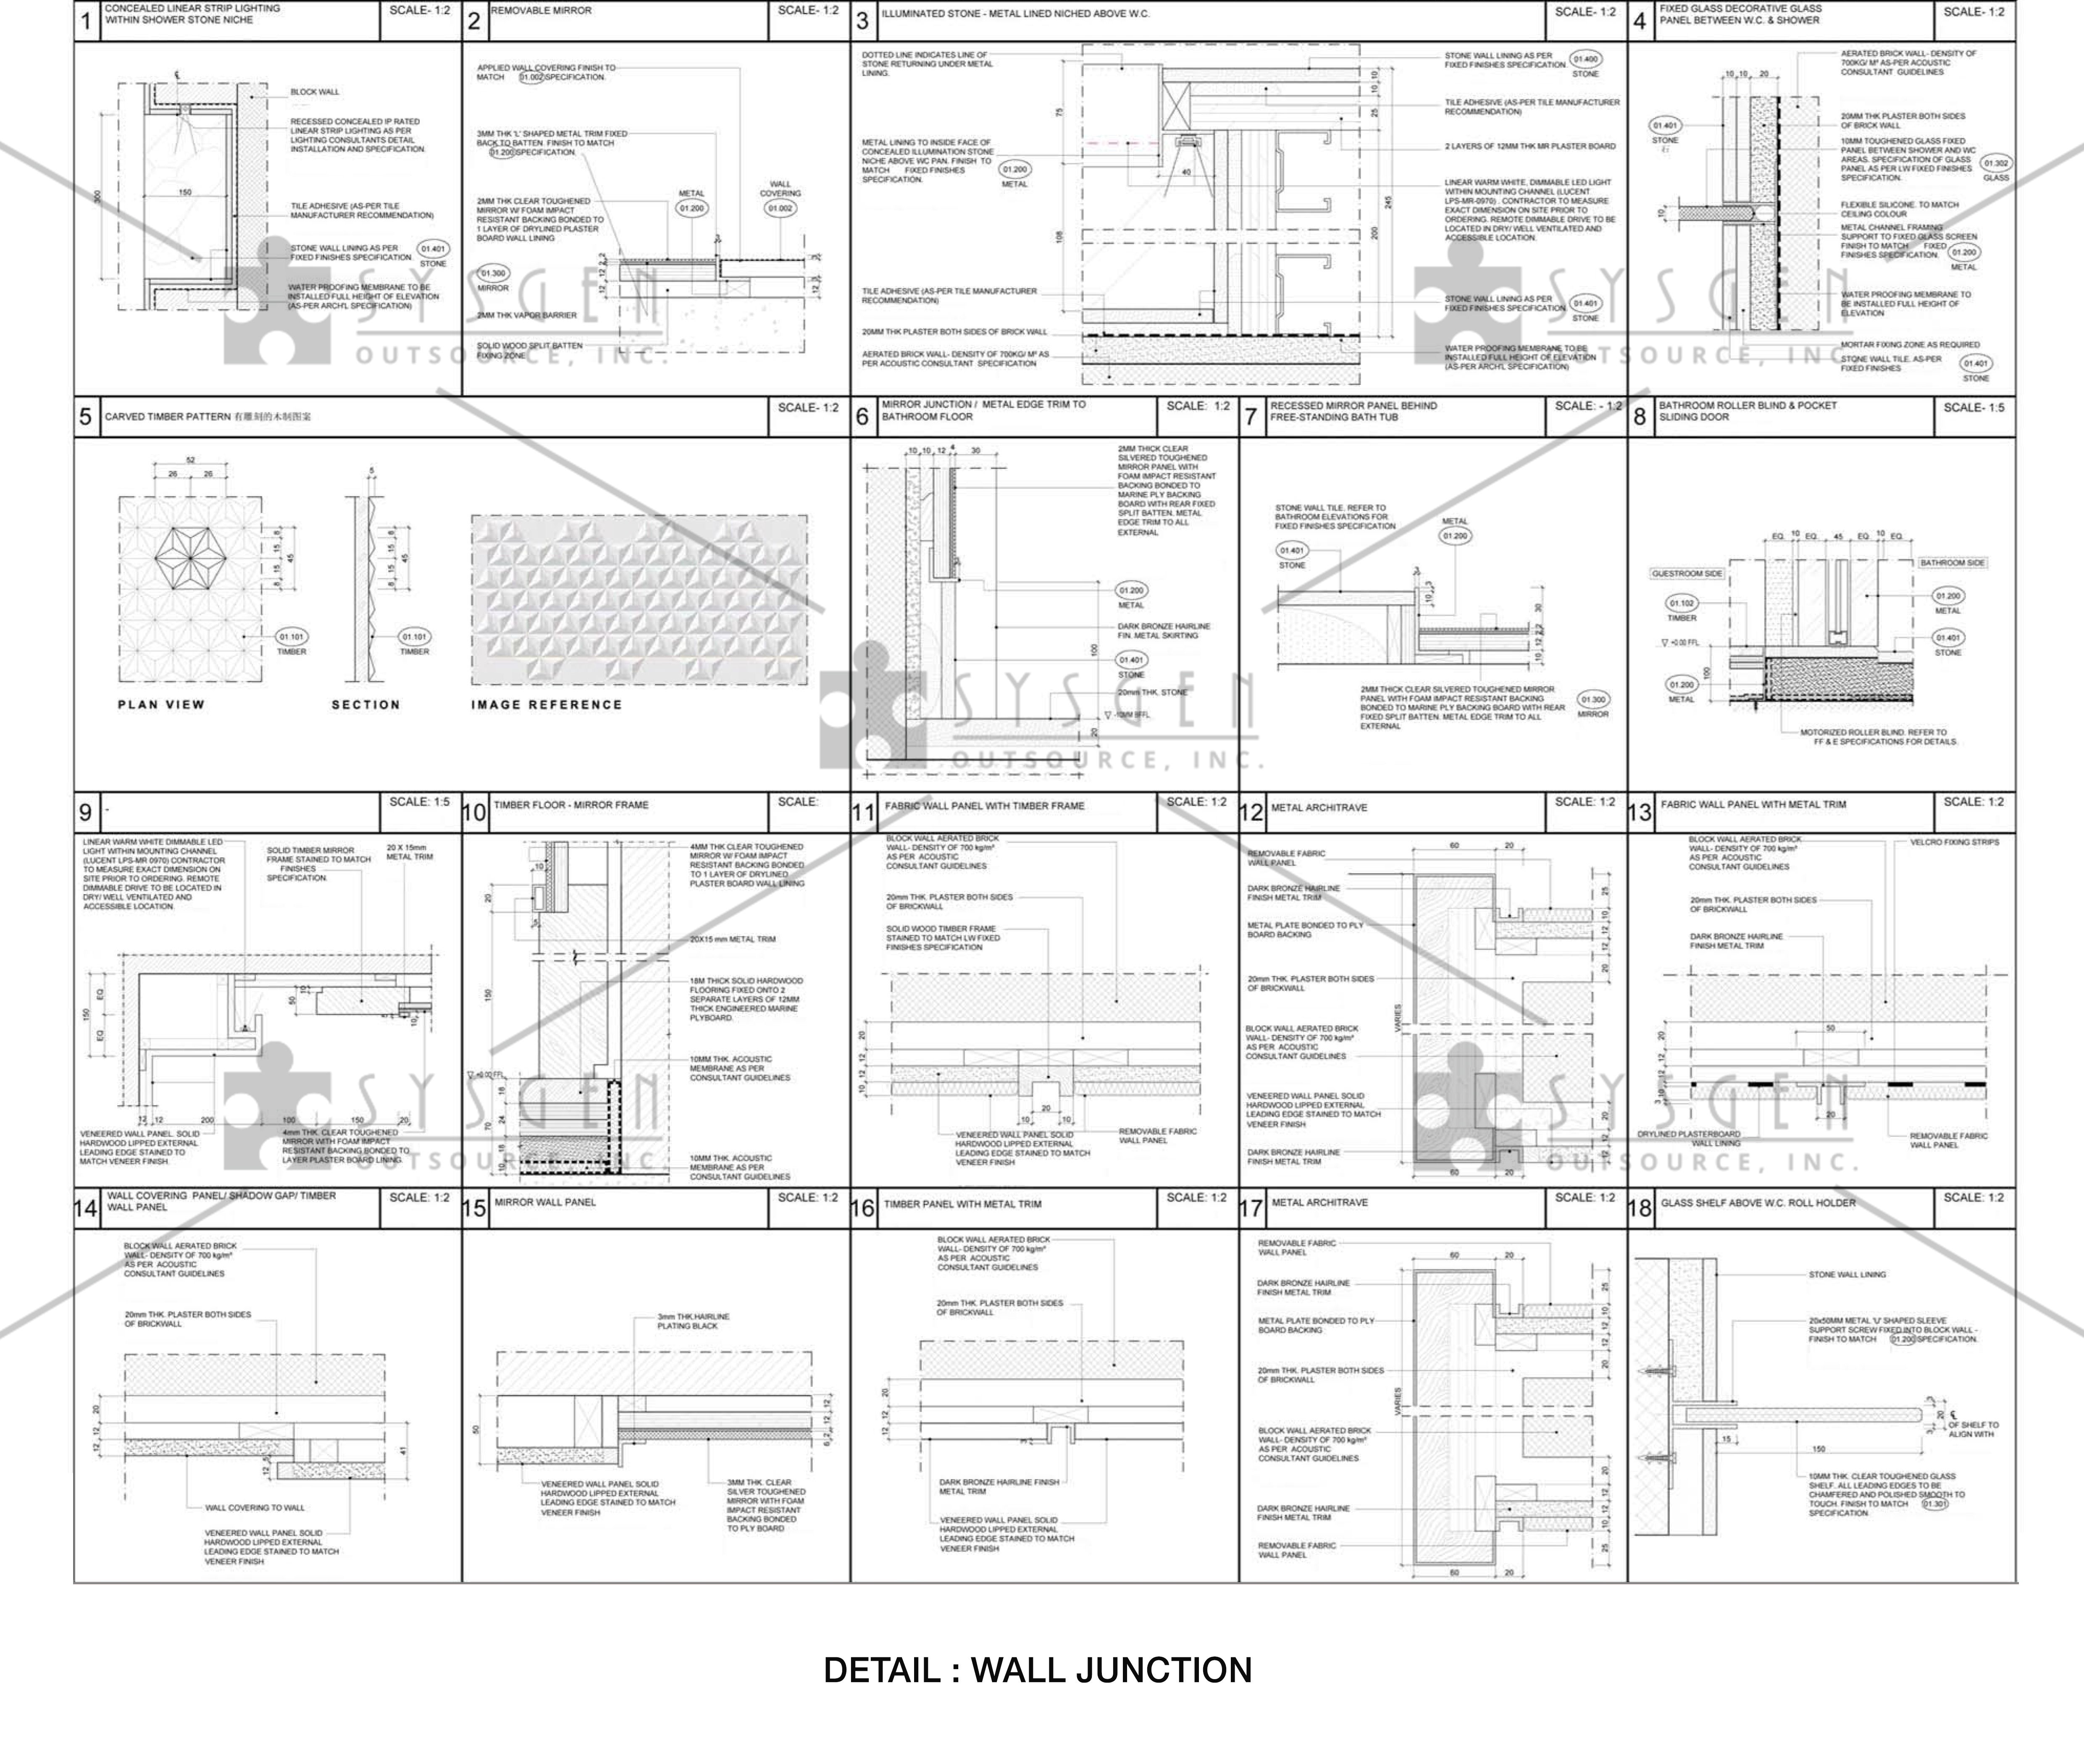 sysgen-outsource-cad-outsourcing-services-interior-design-shop-drawing4